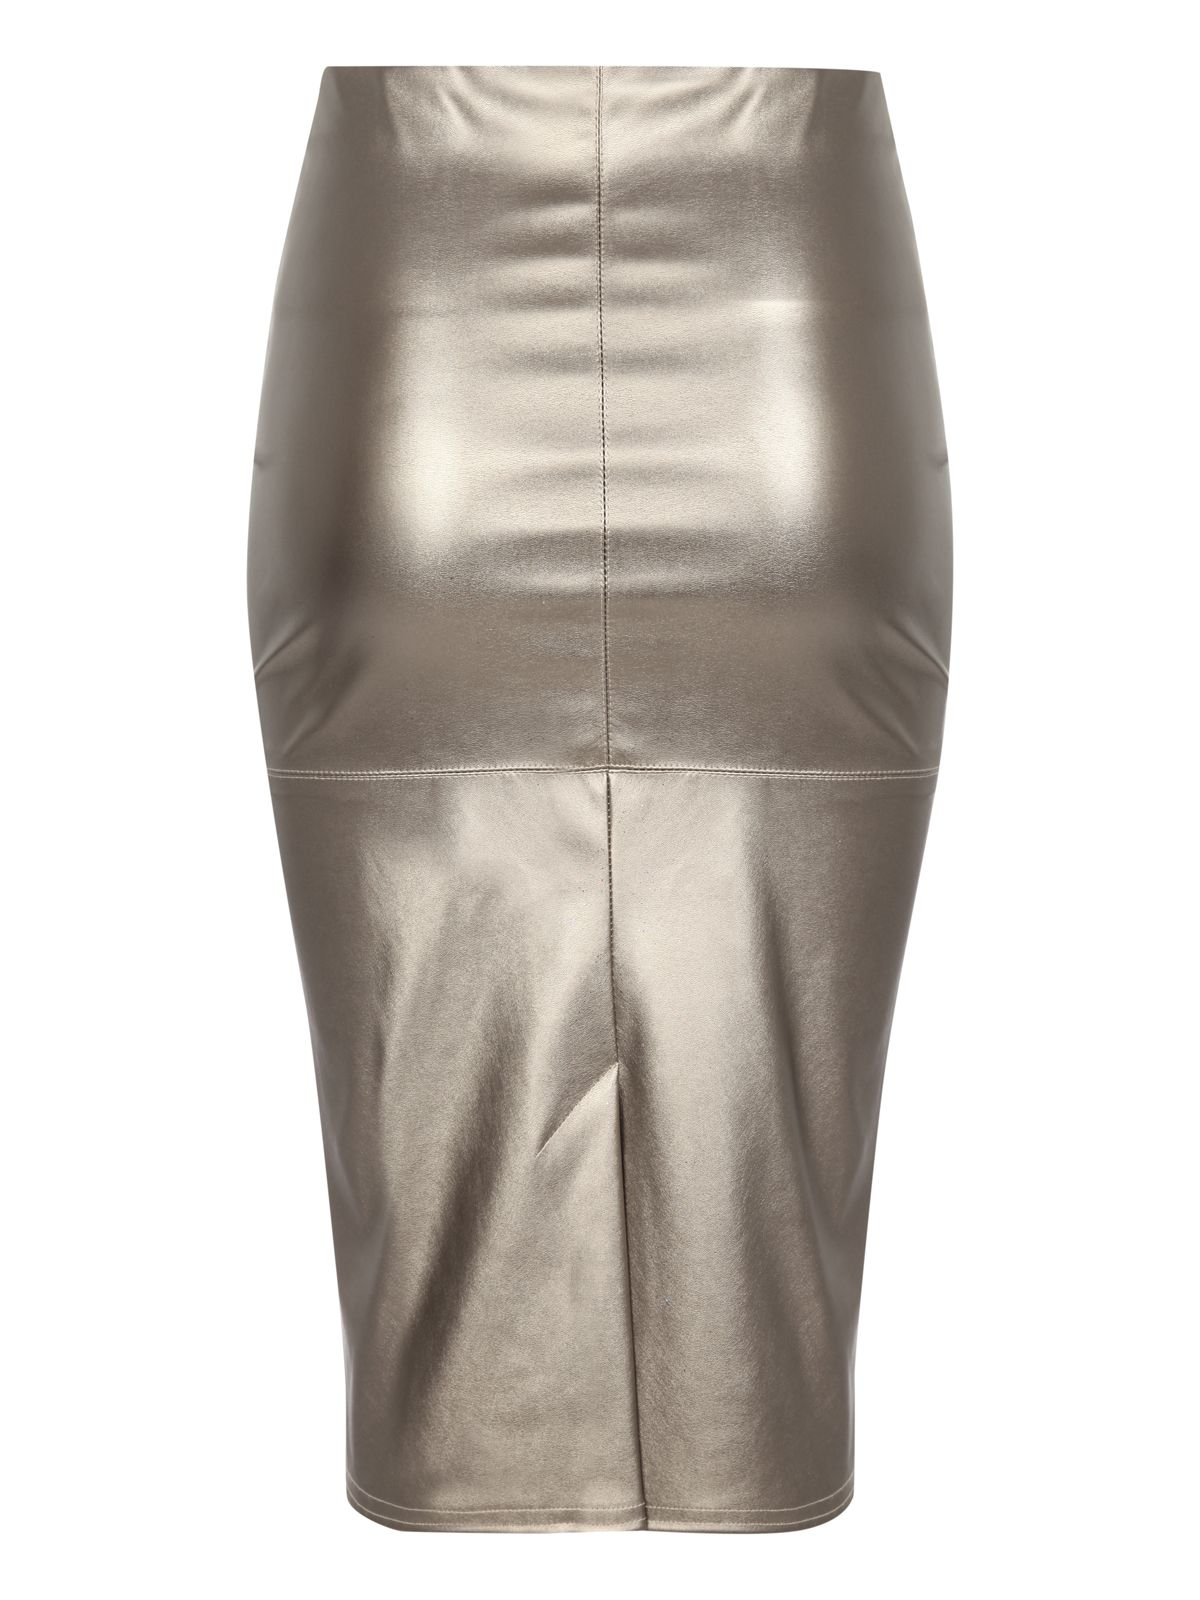 Metallic pu pencil skirt